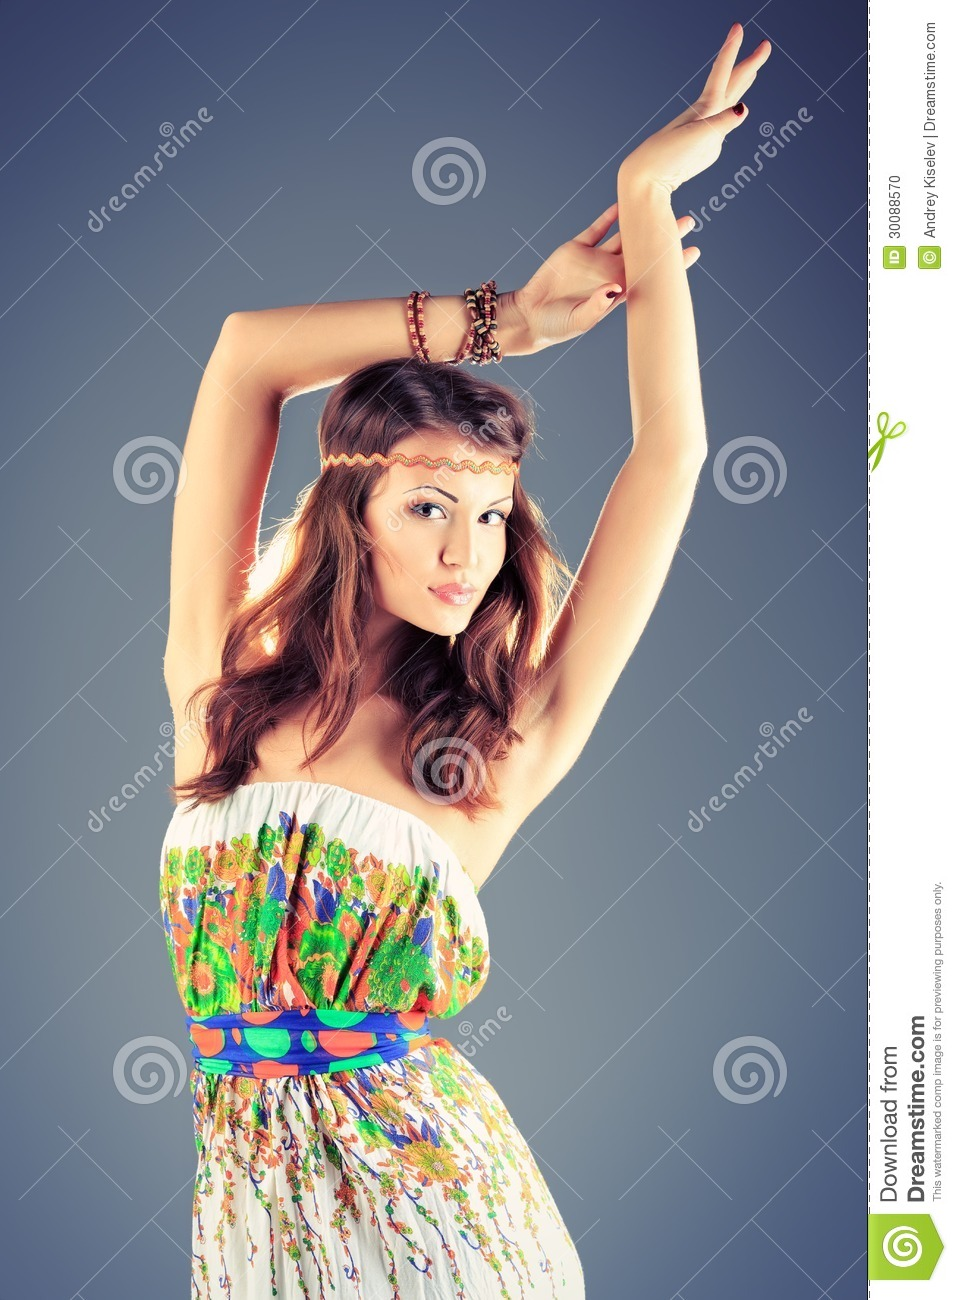 Posing Stock Photo Image 30088570